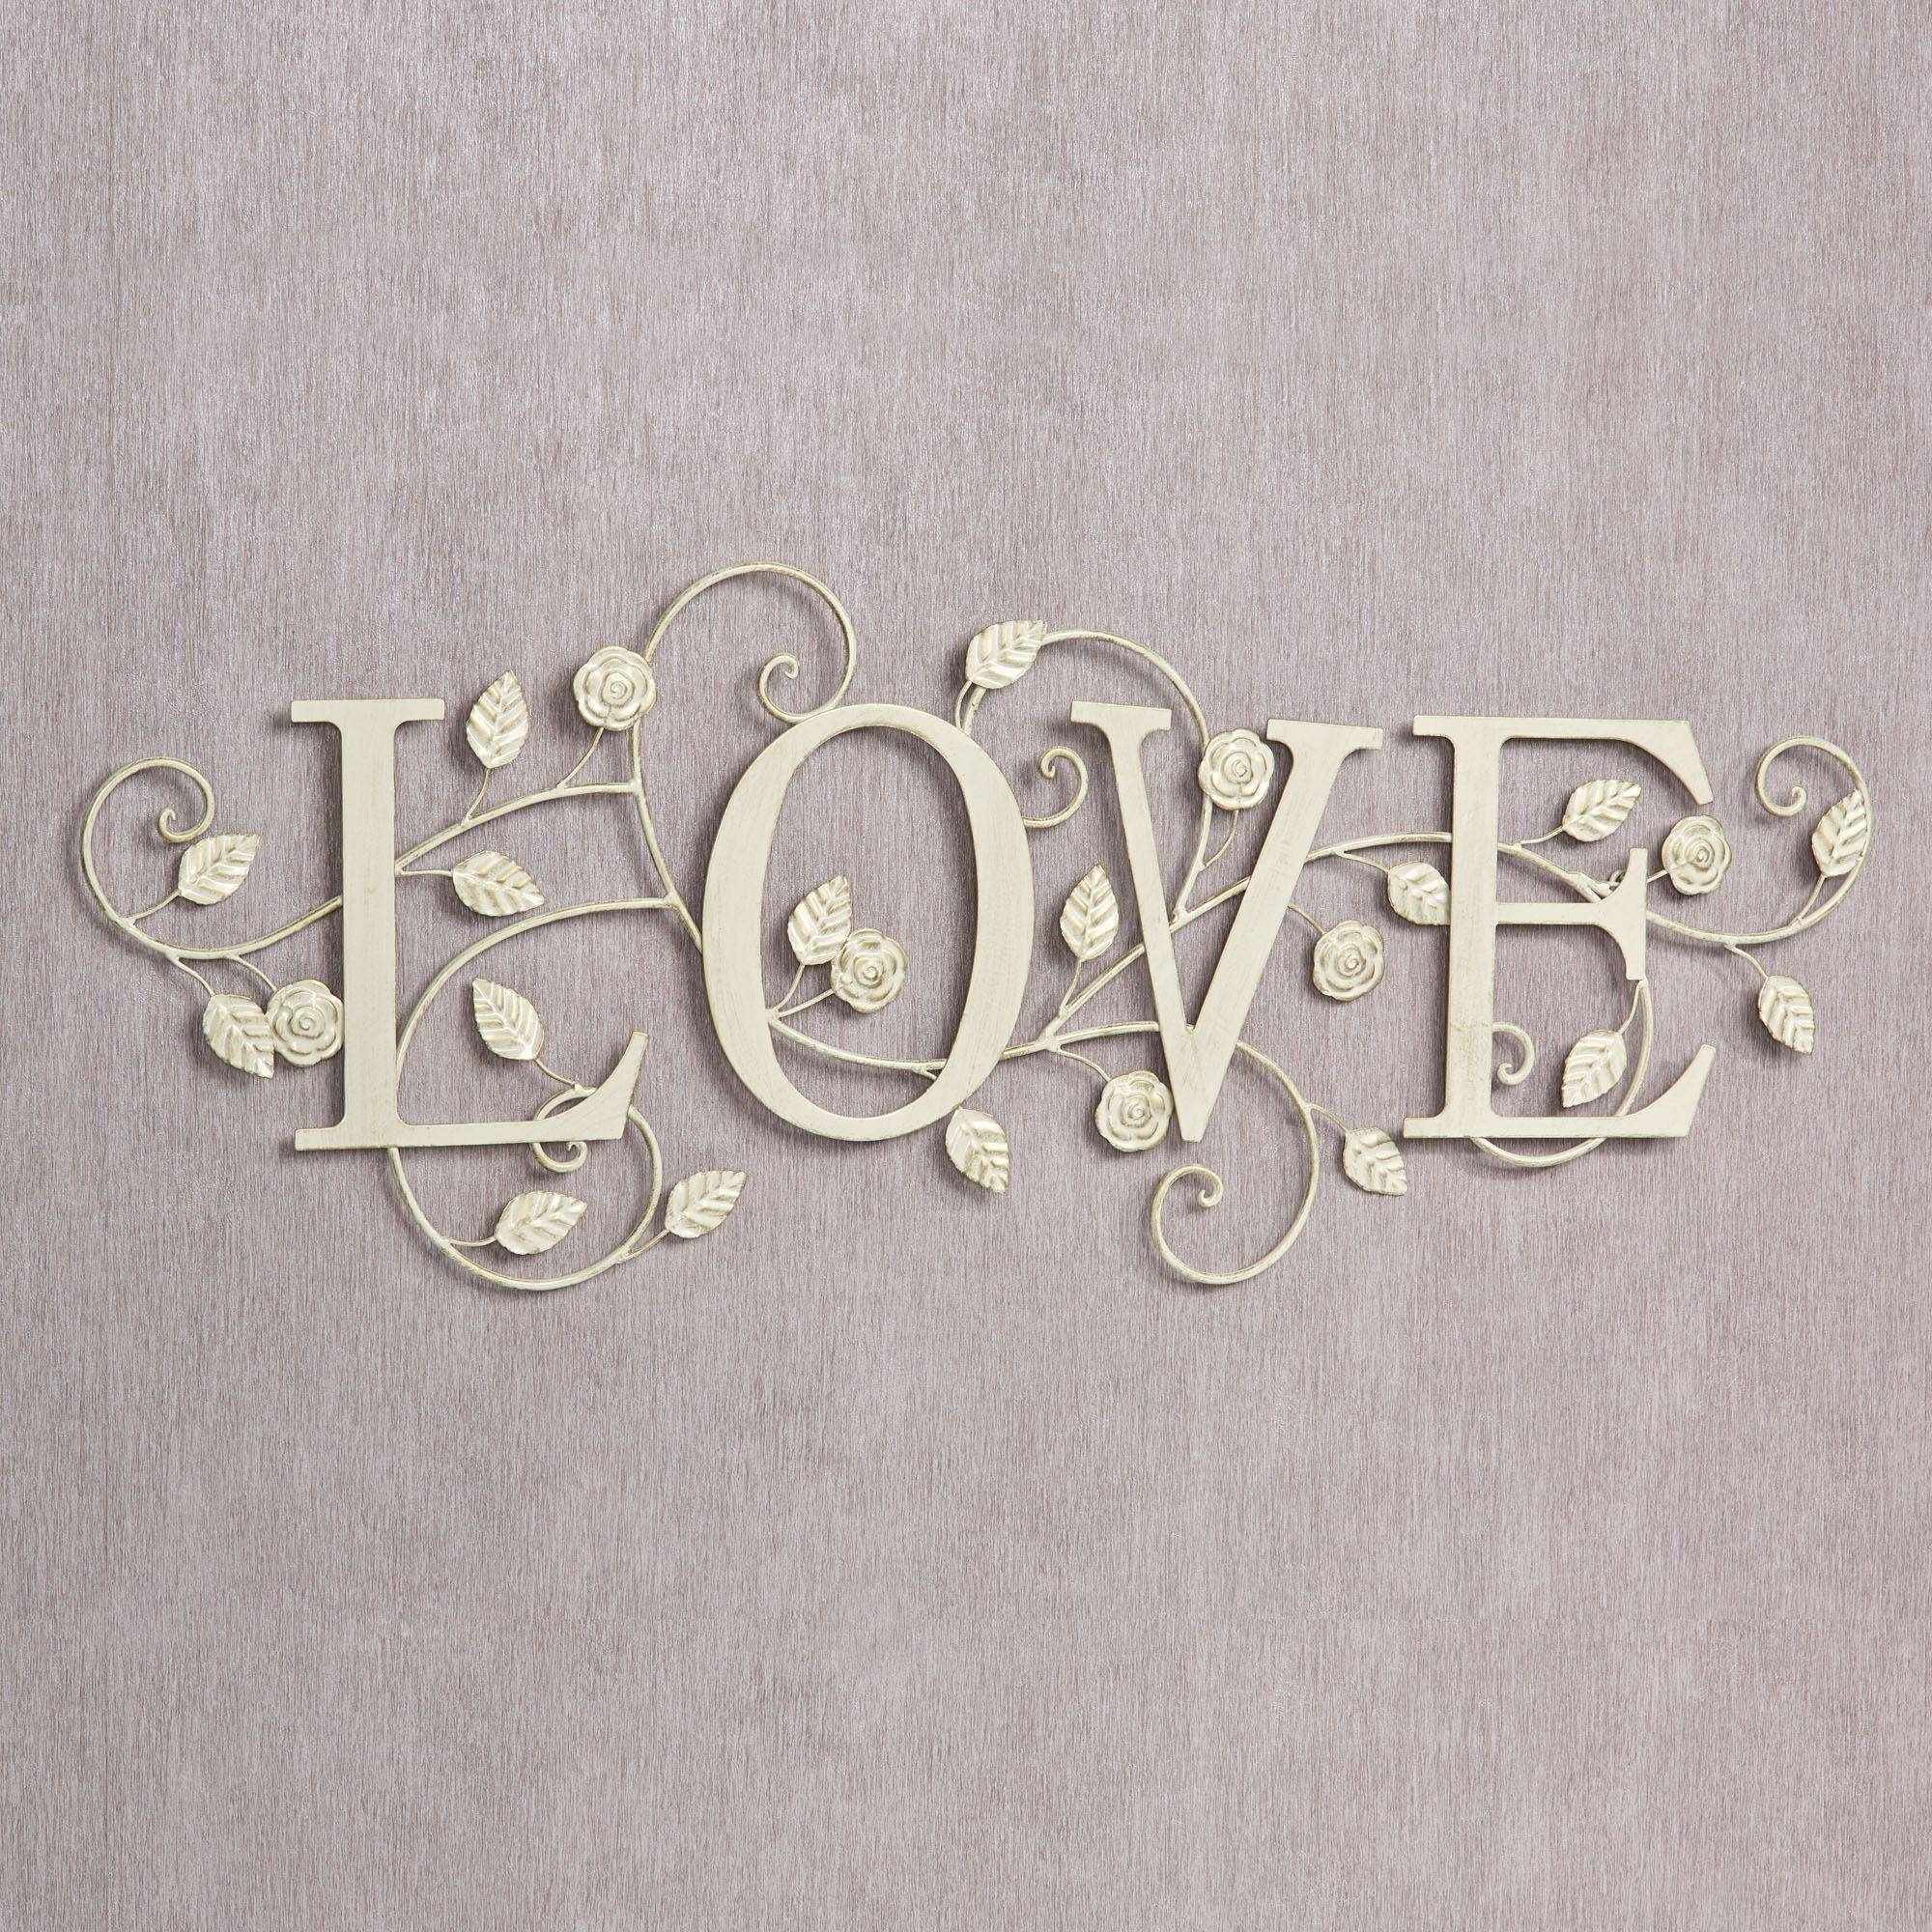 Blooms Of Love Metal Word Wall Art Intended For Most Popular Metal Wall Art Words (View 5 of 20)